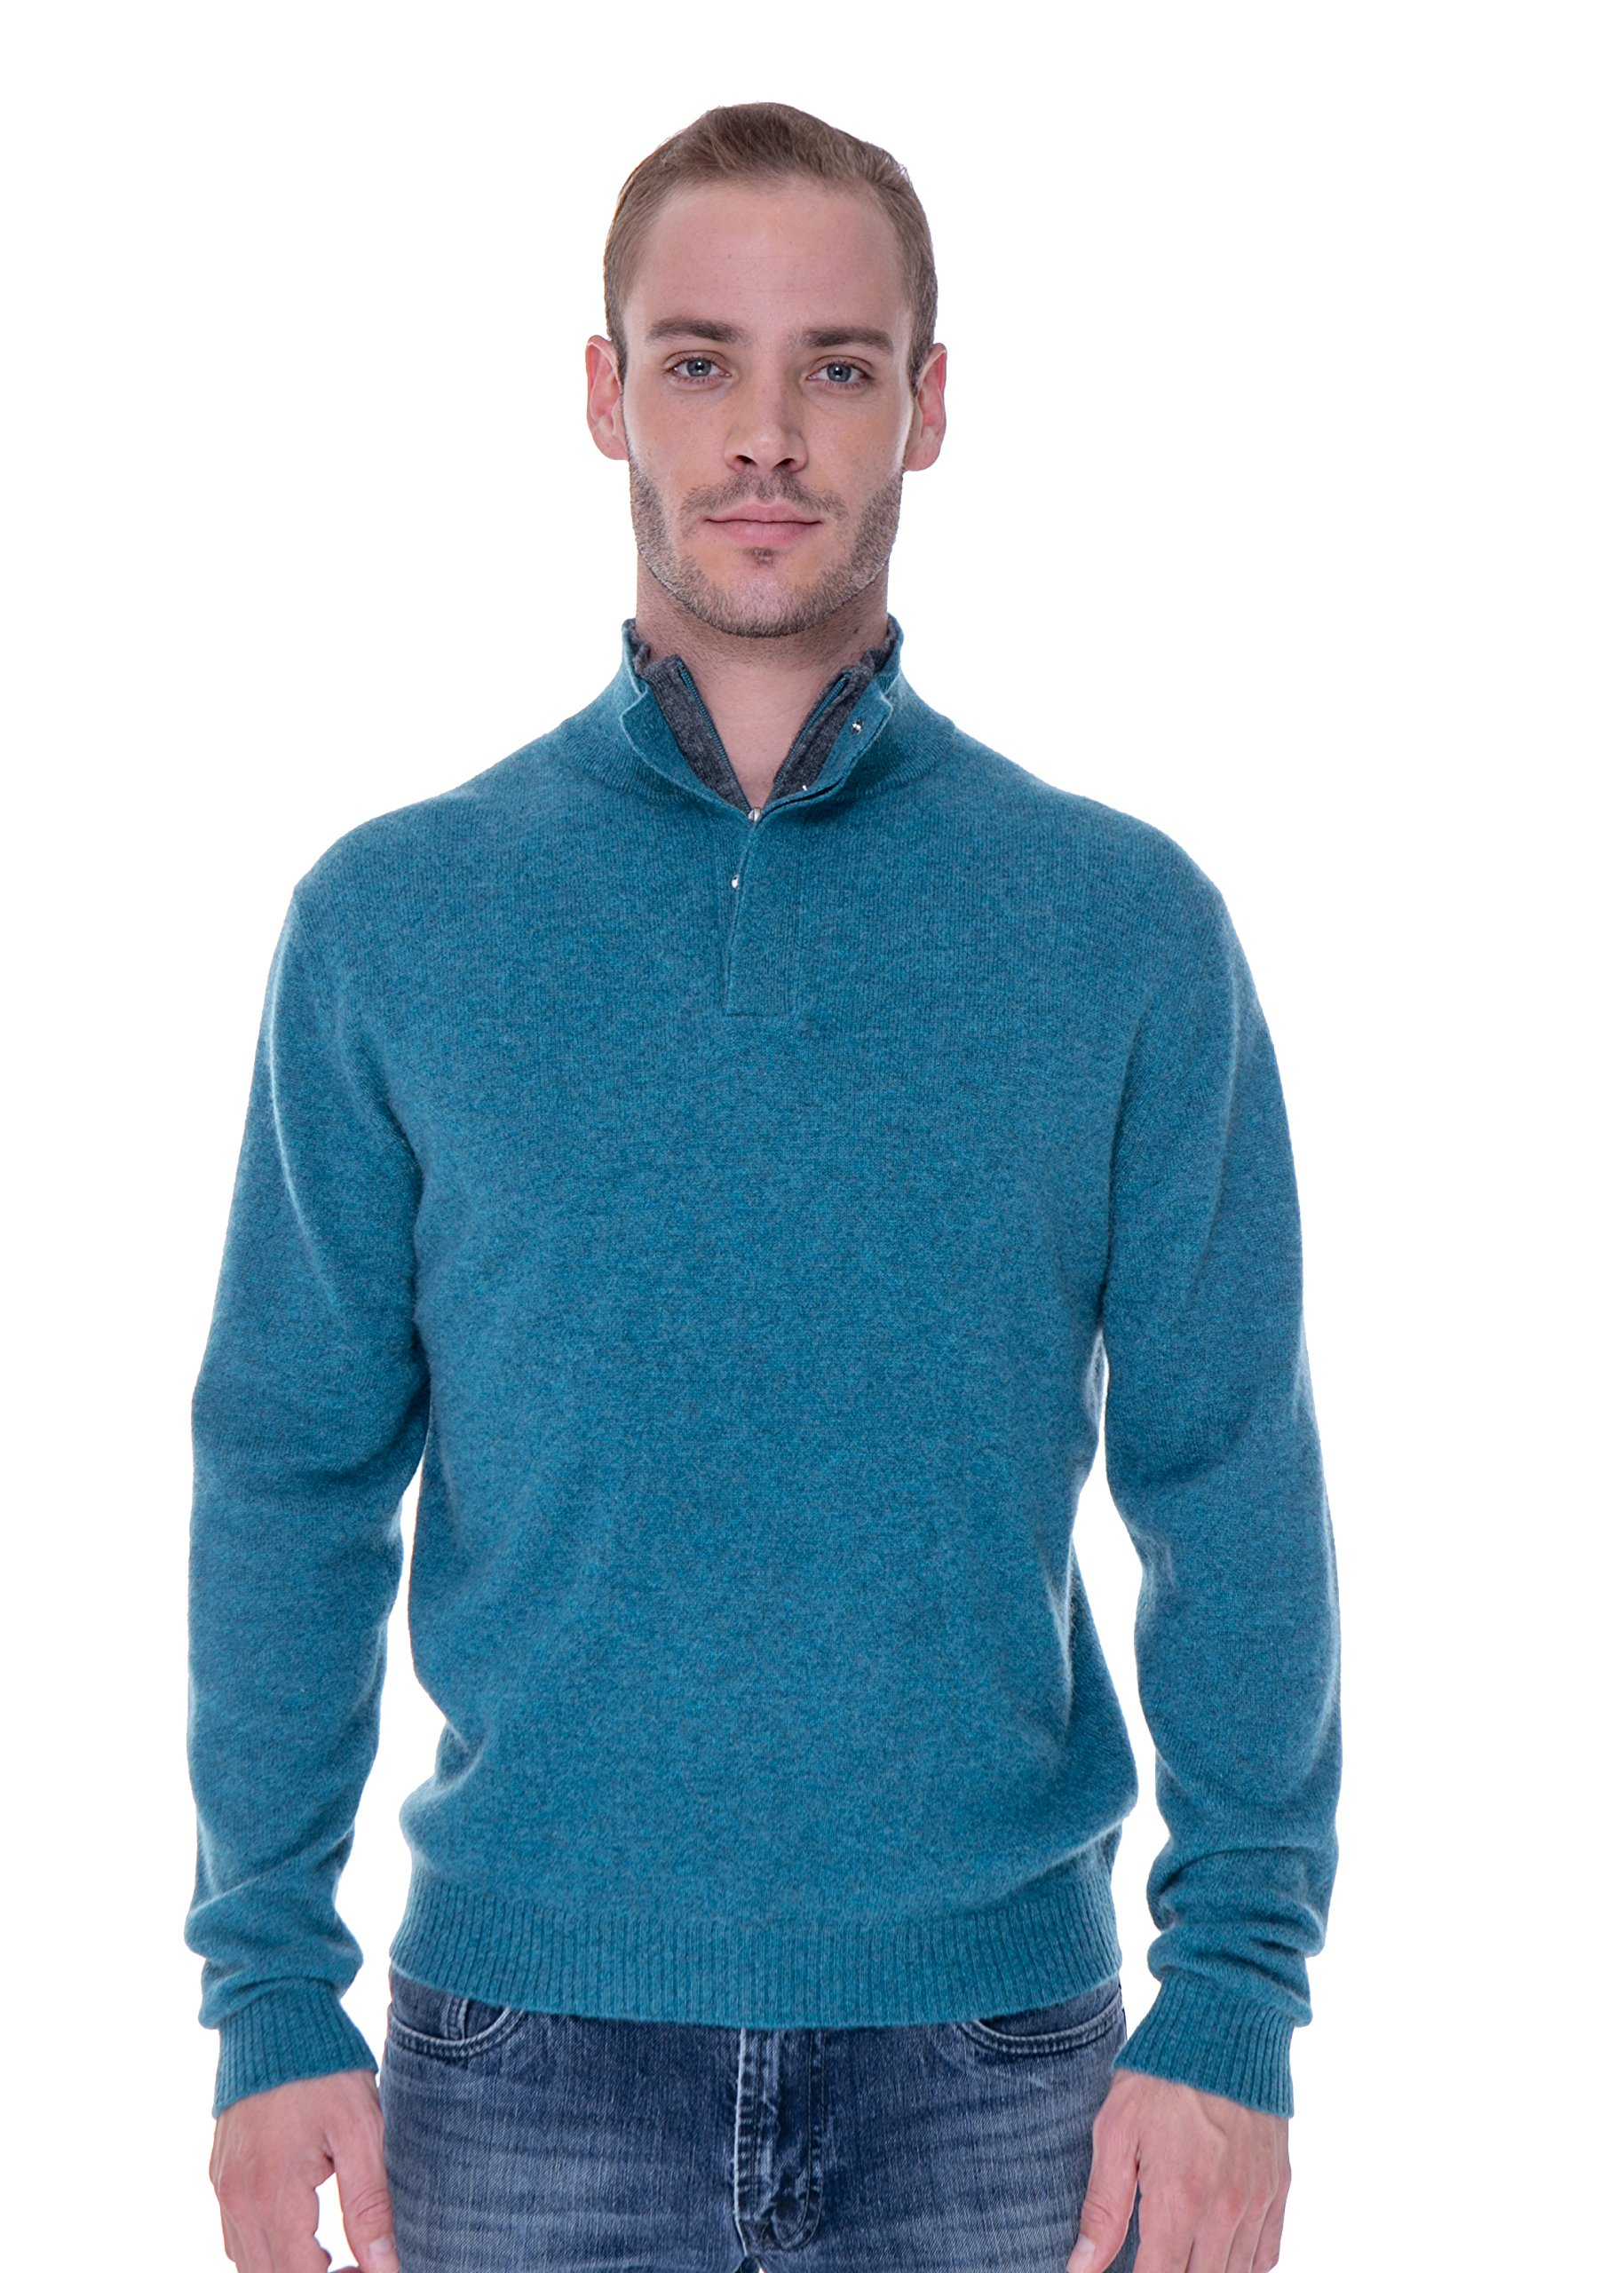 LEBAC Men's 100% Cashmere Quarter Zipped Pullover With Elbow Patches (X-Large, Turquoise/Grey)